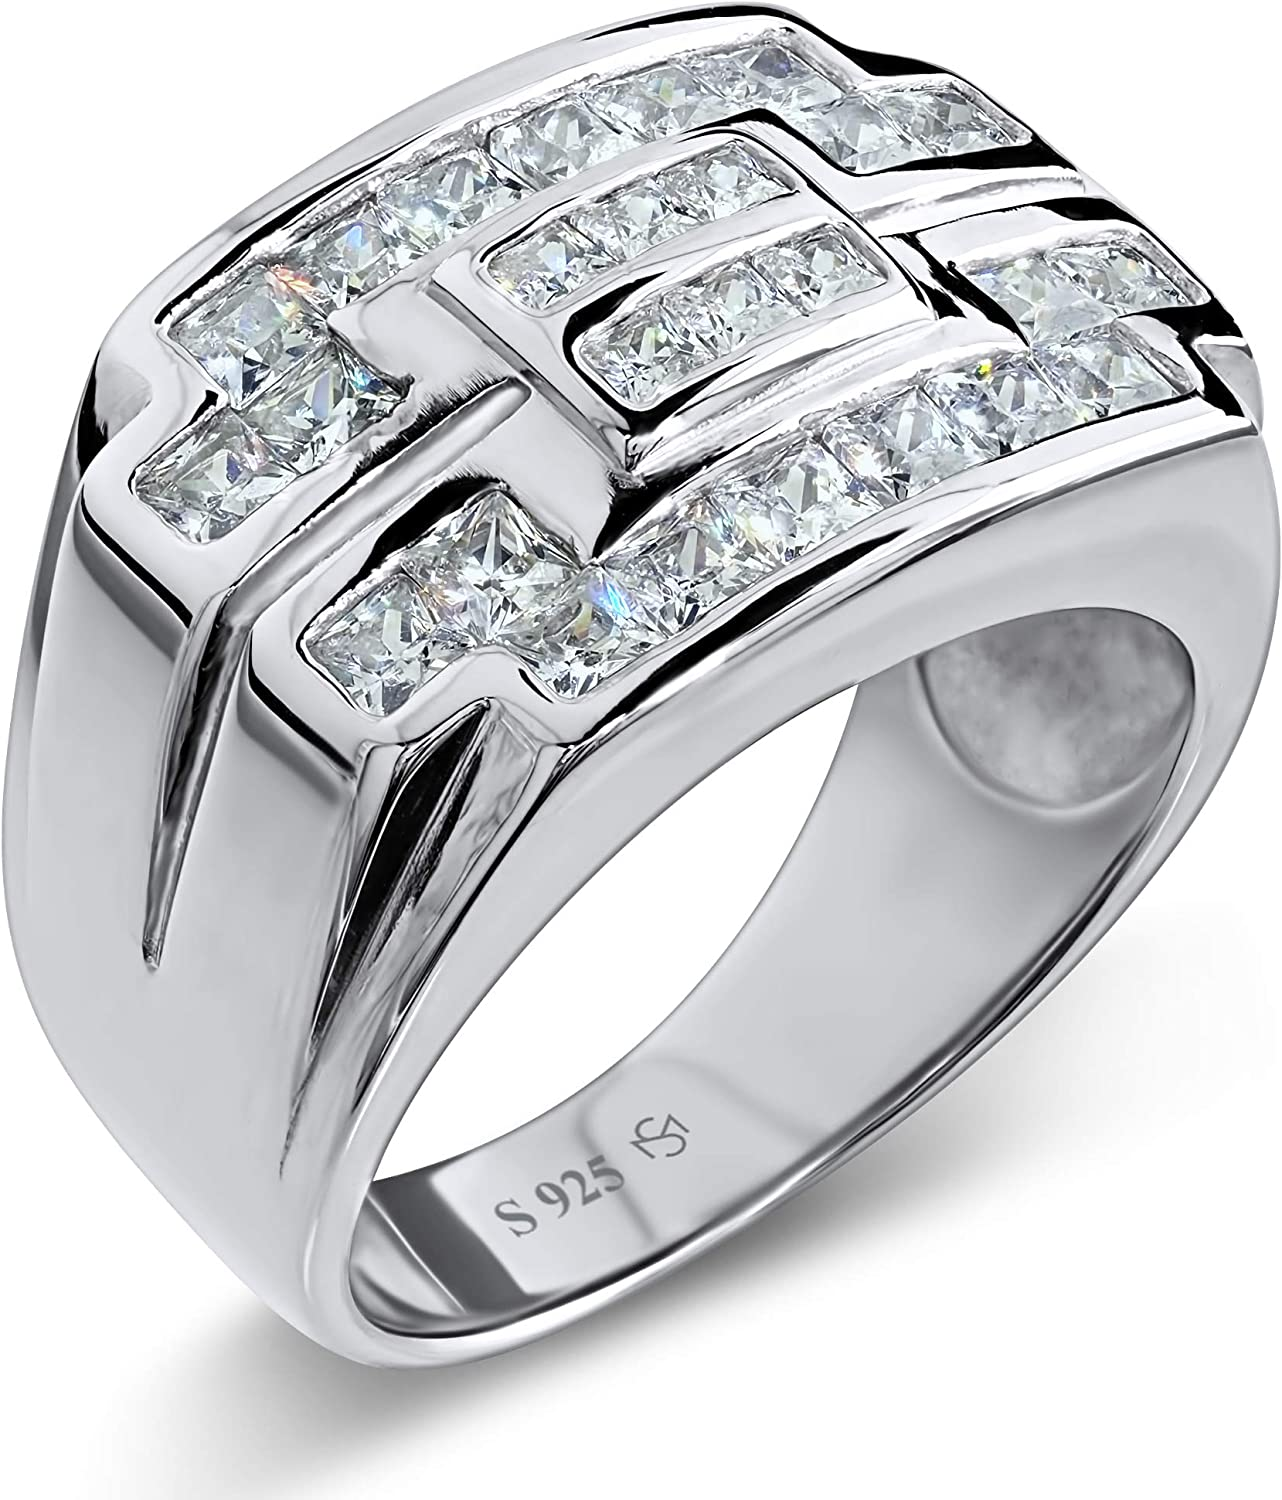 [2-5 Days Delivery] Men's Sterling Silver .925 Ring Featuring 26 Channel-Set Square Cubic Zirconia (CZ) Stones, Platinum Plated. By Sterling Manufacturers. Flashy Eye Catching Design.